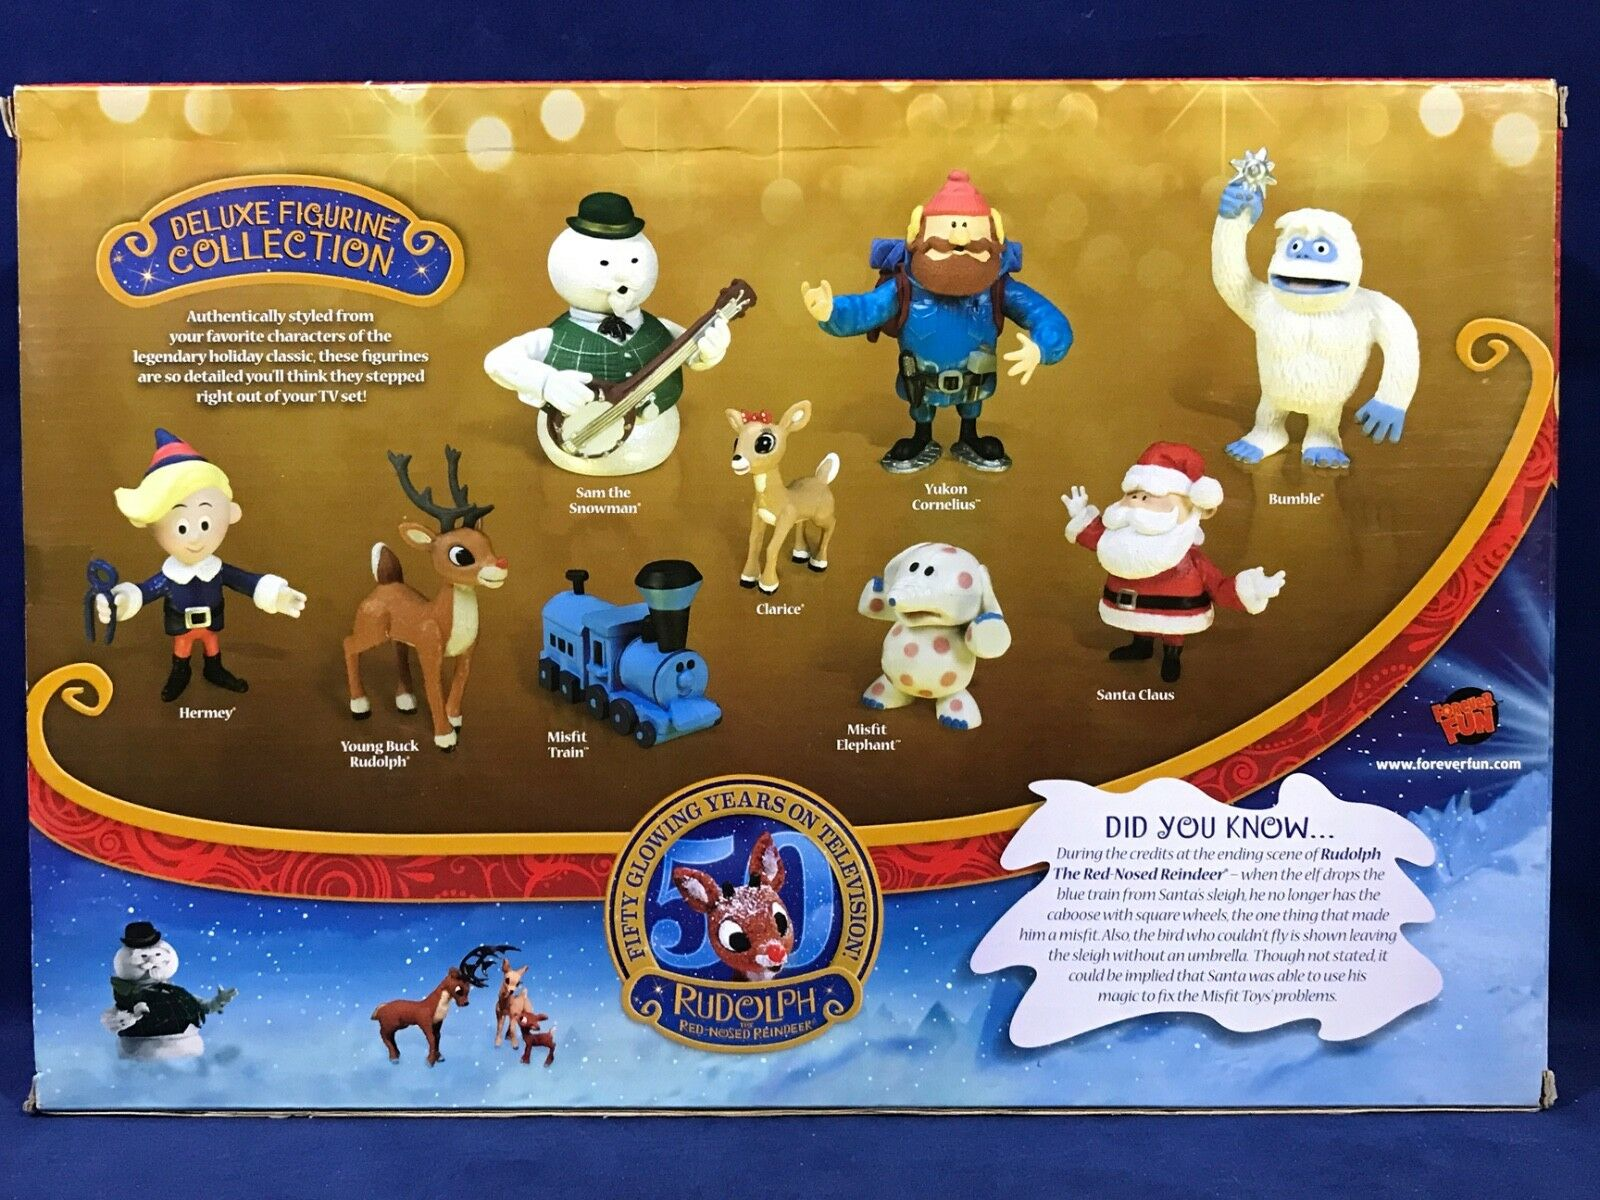 RUDOLPH Red-Nosed REINDEER Deluxe Figurine Figurine Figurine Collection DISPLAY STAND Forever Fun 9d087c